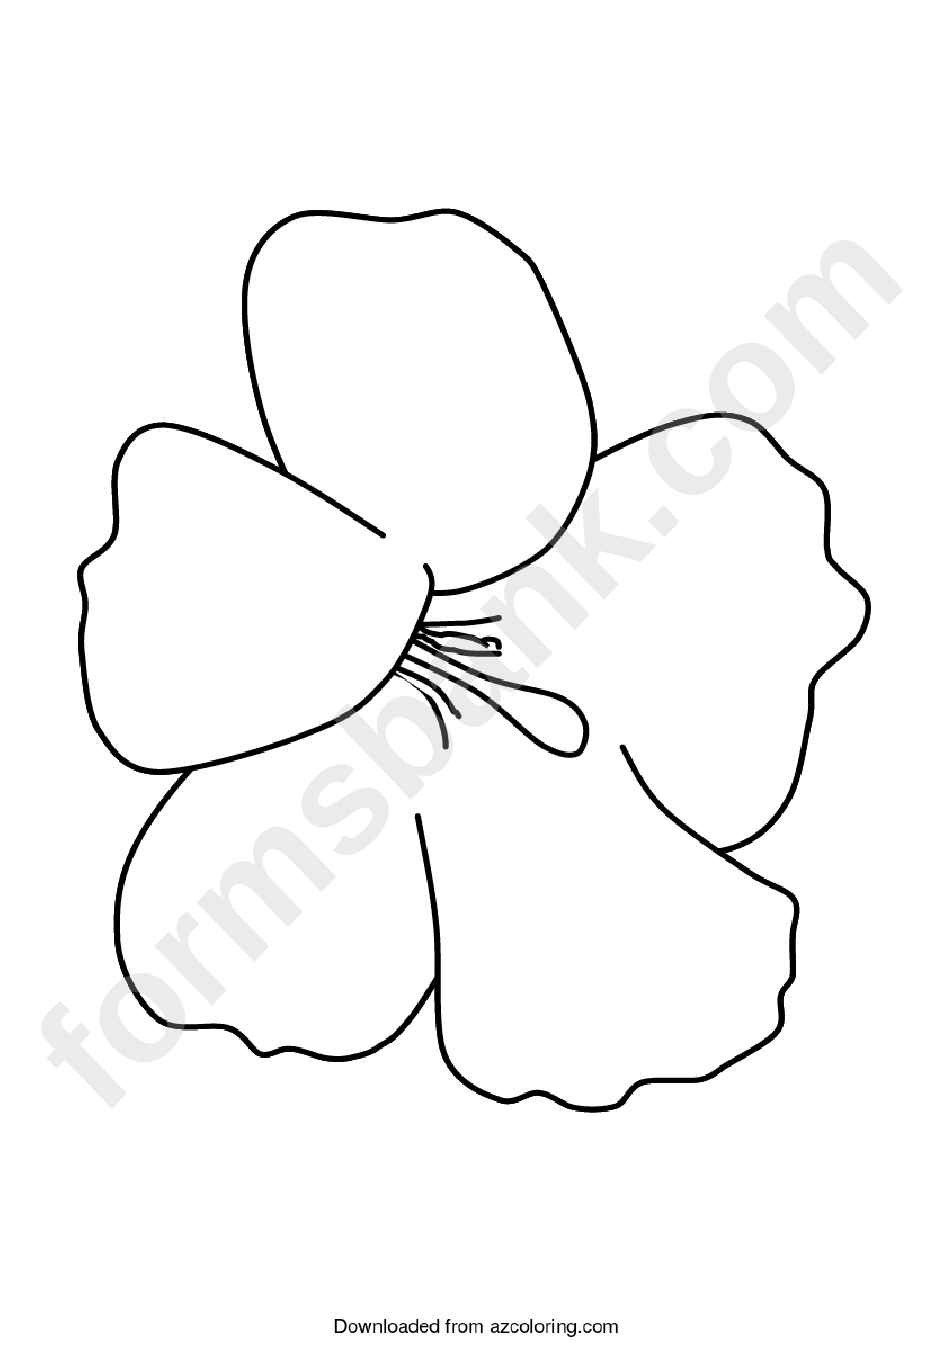 Hawaiian Flower Template printable pdf download